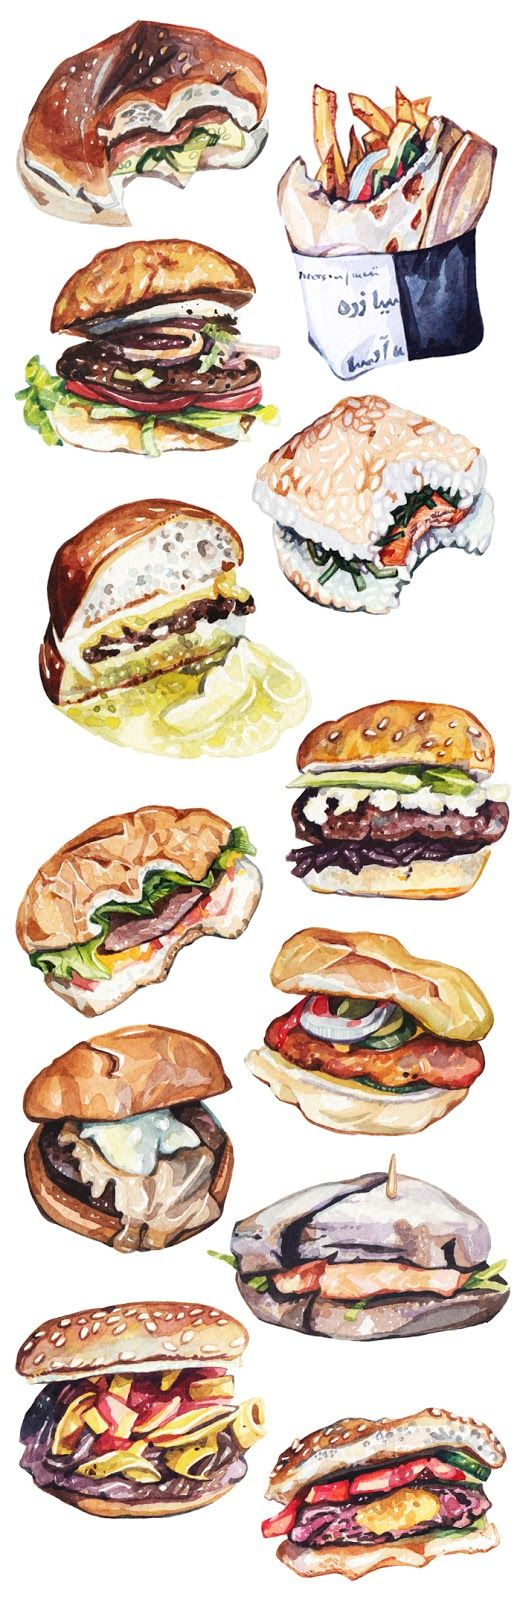 Watercolour Illustrations - Holly Exley Illustrator